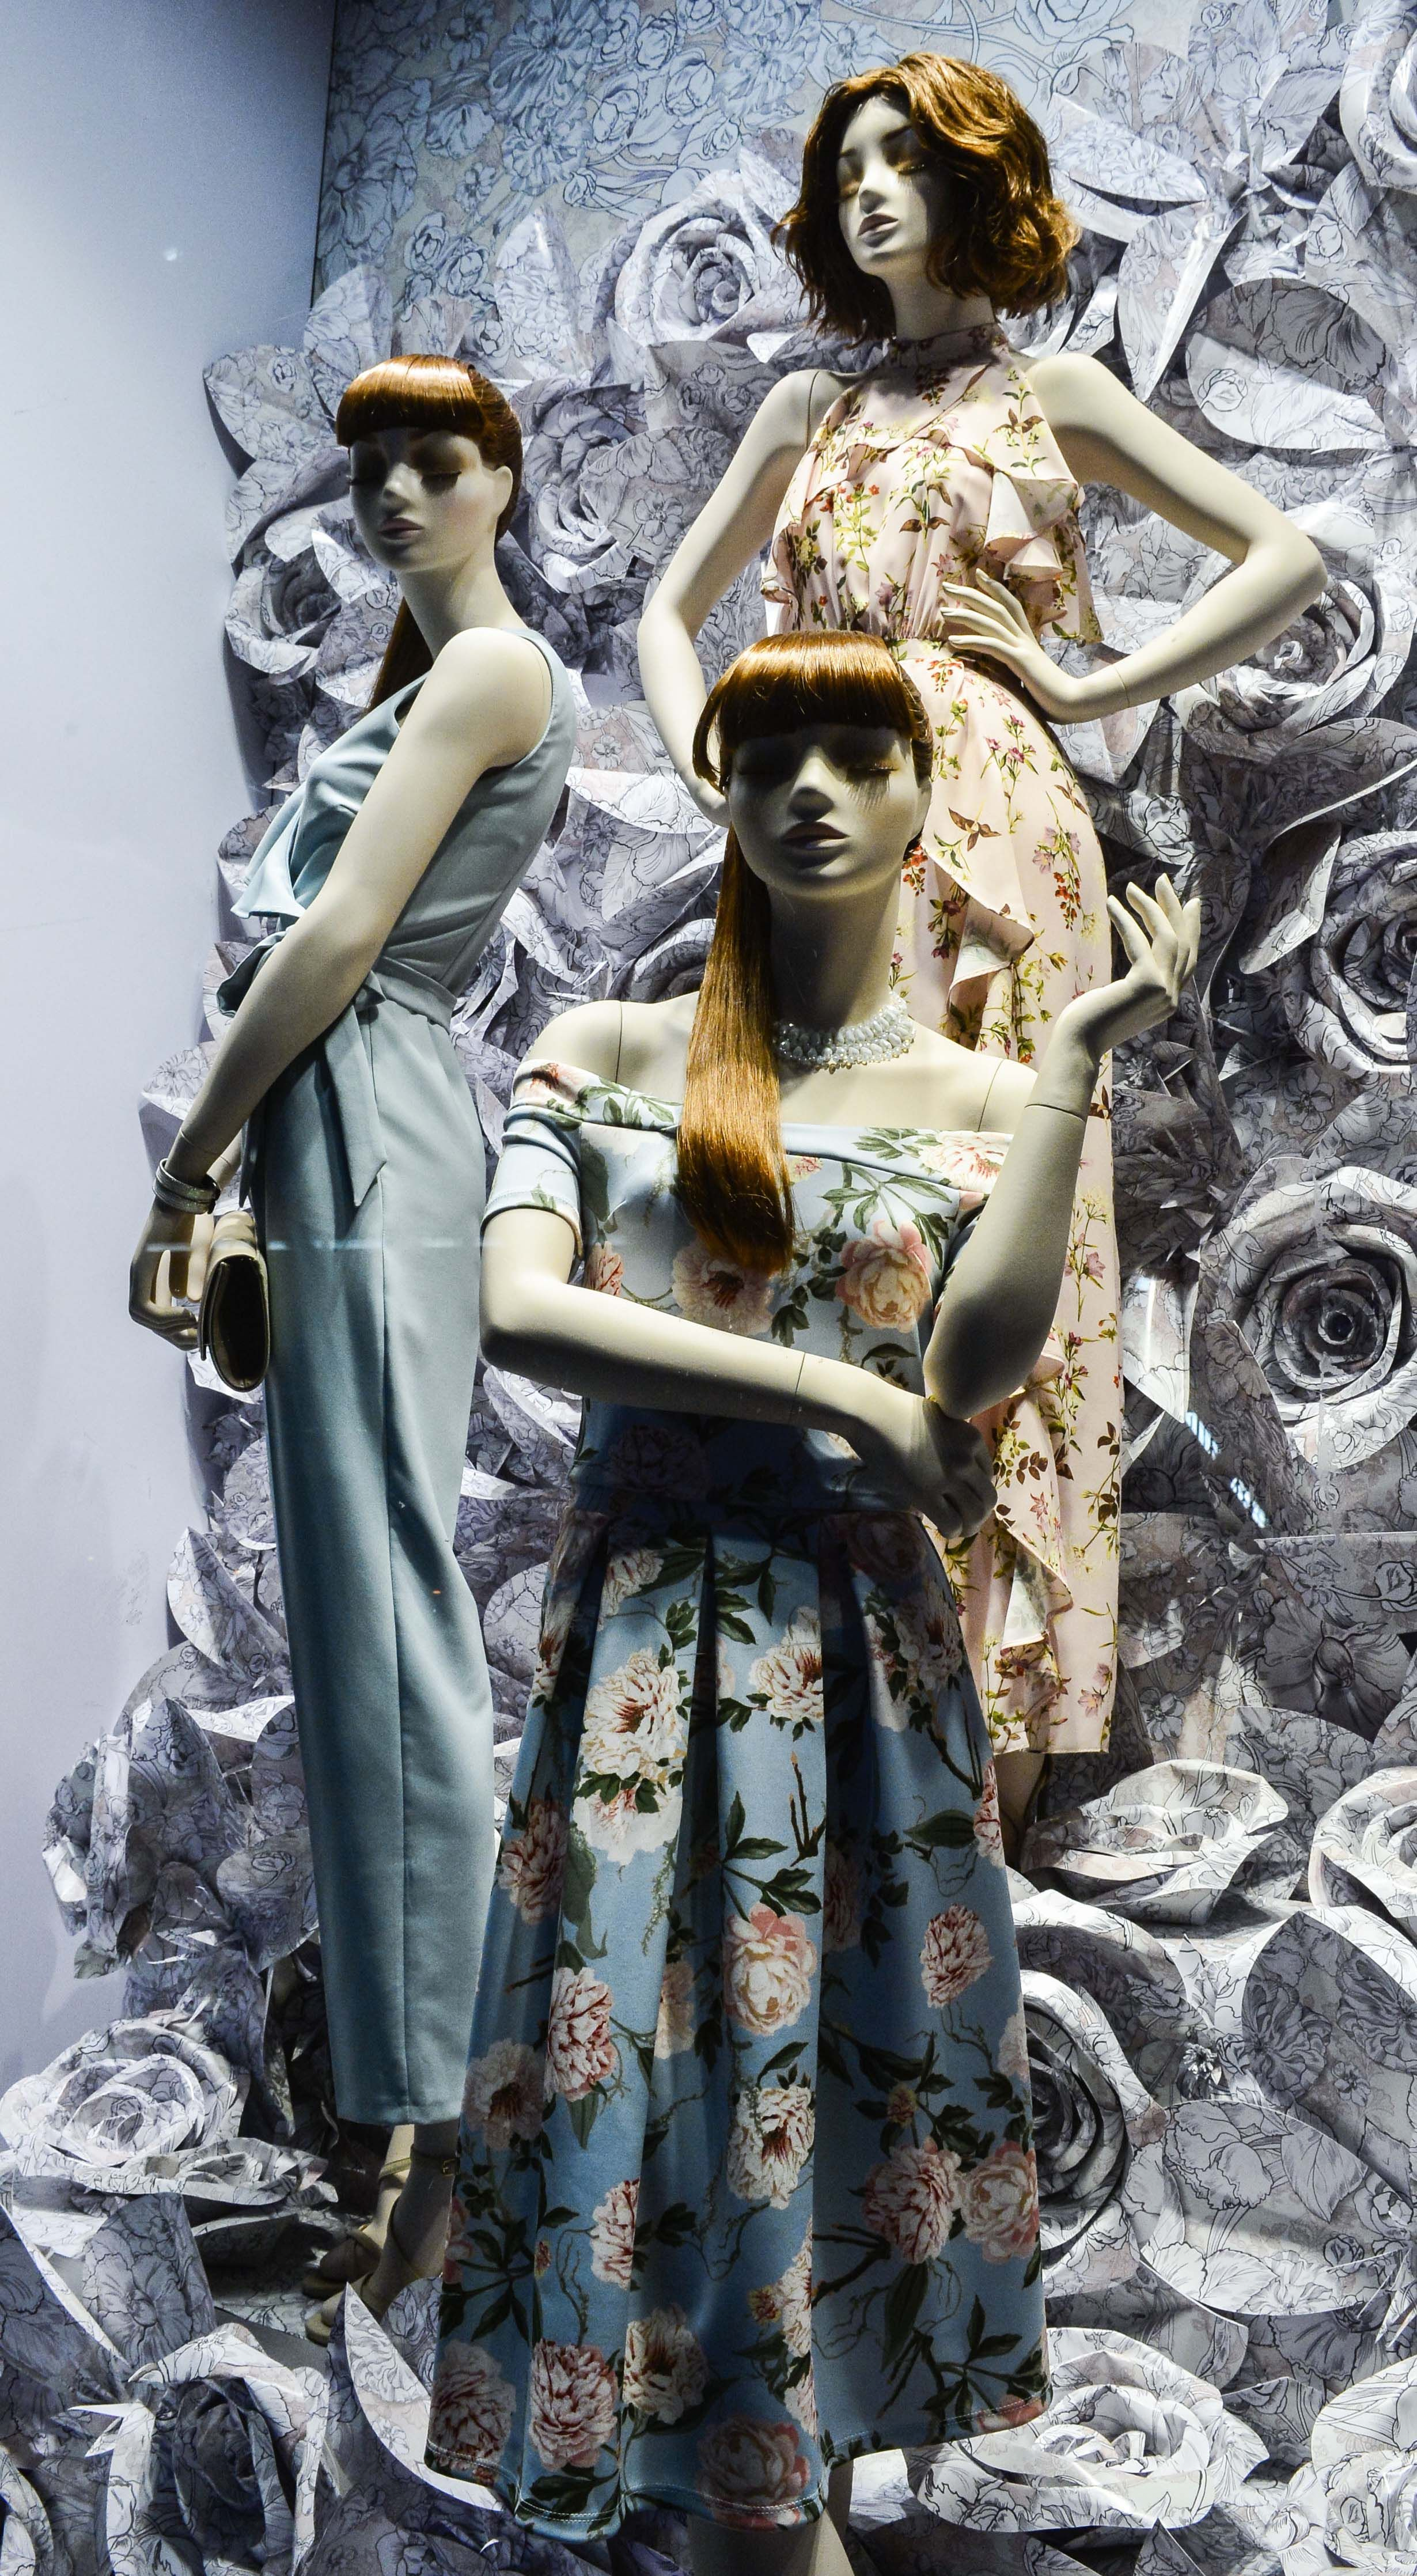 Spring Windows at Miss Selfridge London | Mannequins with customized heads from these collections: Mood: http://www.genesis-display.com/en/collection/847/Mood%20Female, Couture: http://www.genesis-display.com/en/collection/65/Couture & Vision Female: http://www.genesis-display.com/en/collection/19/Vision%20Female